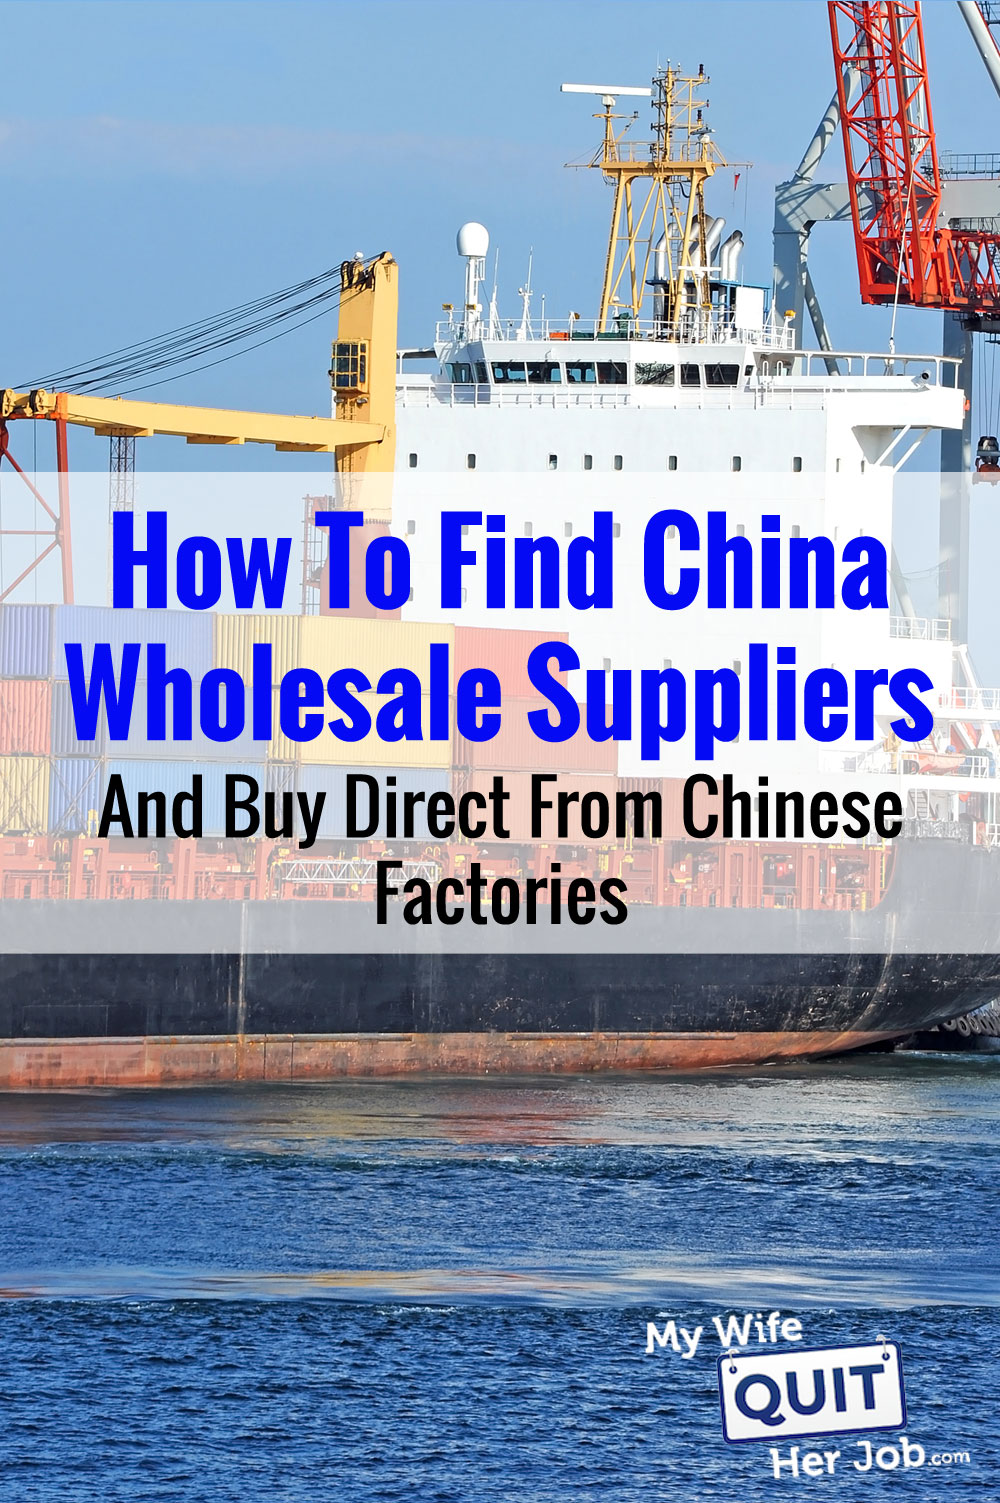 b7b9db4dbd7 How To Find China Wholesale Suppliers And Import Direct From Chinese  Factories